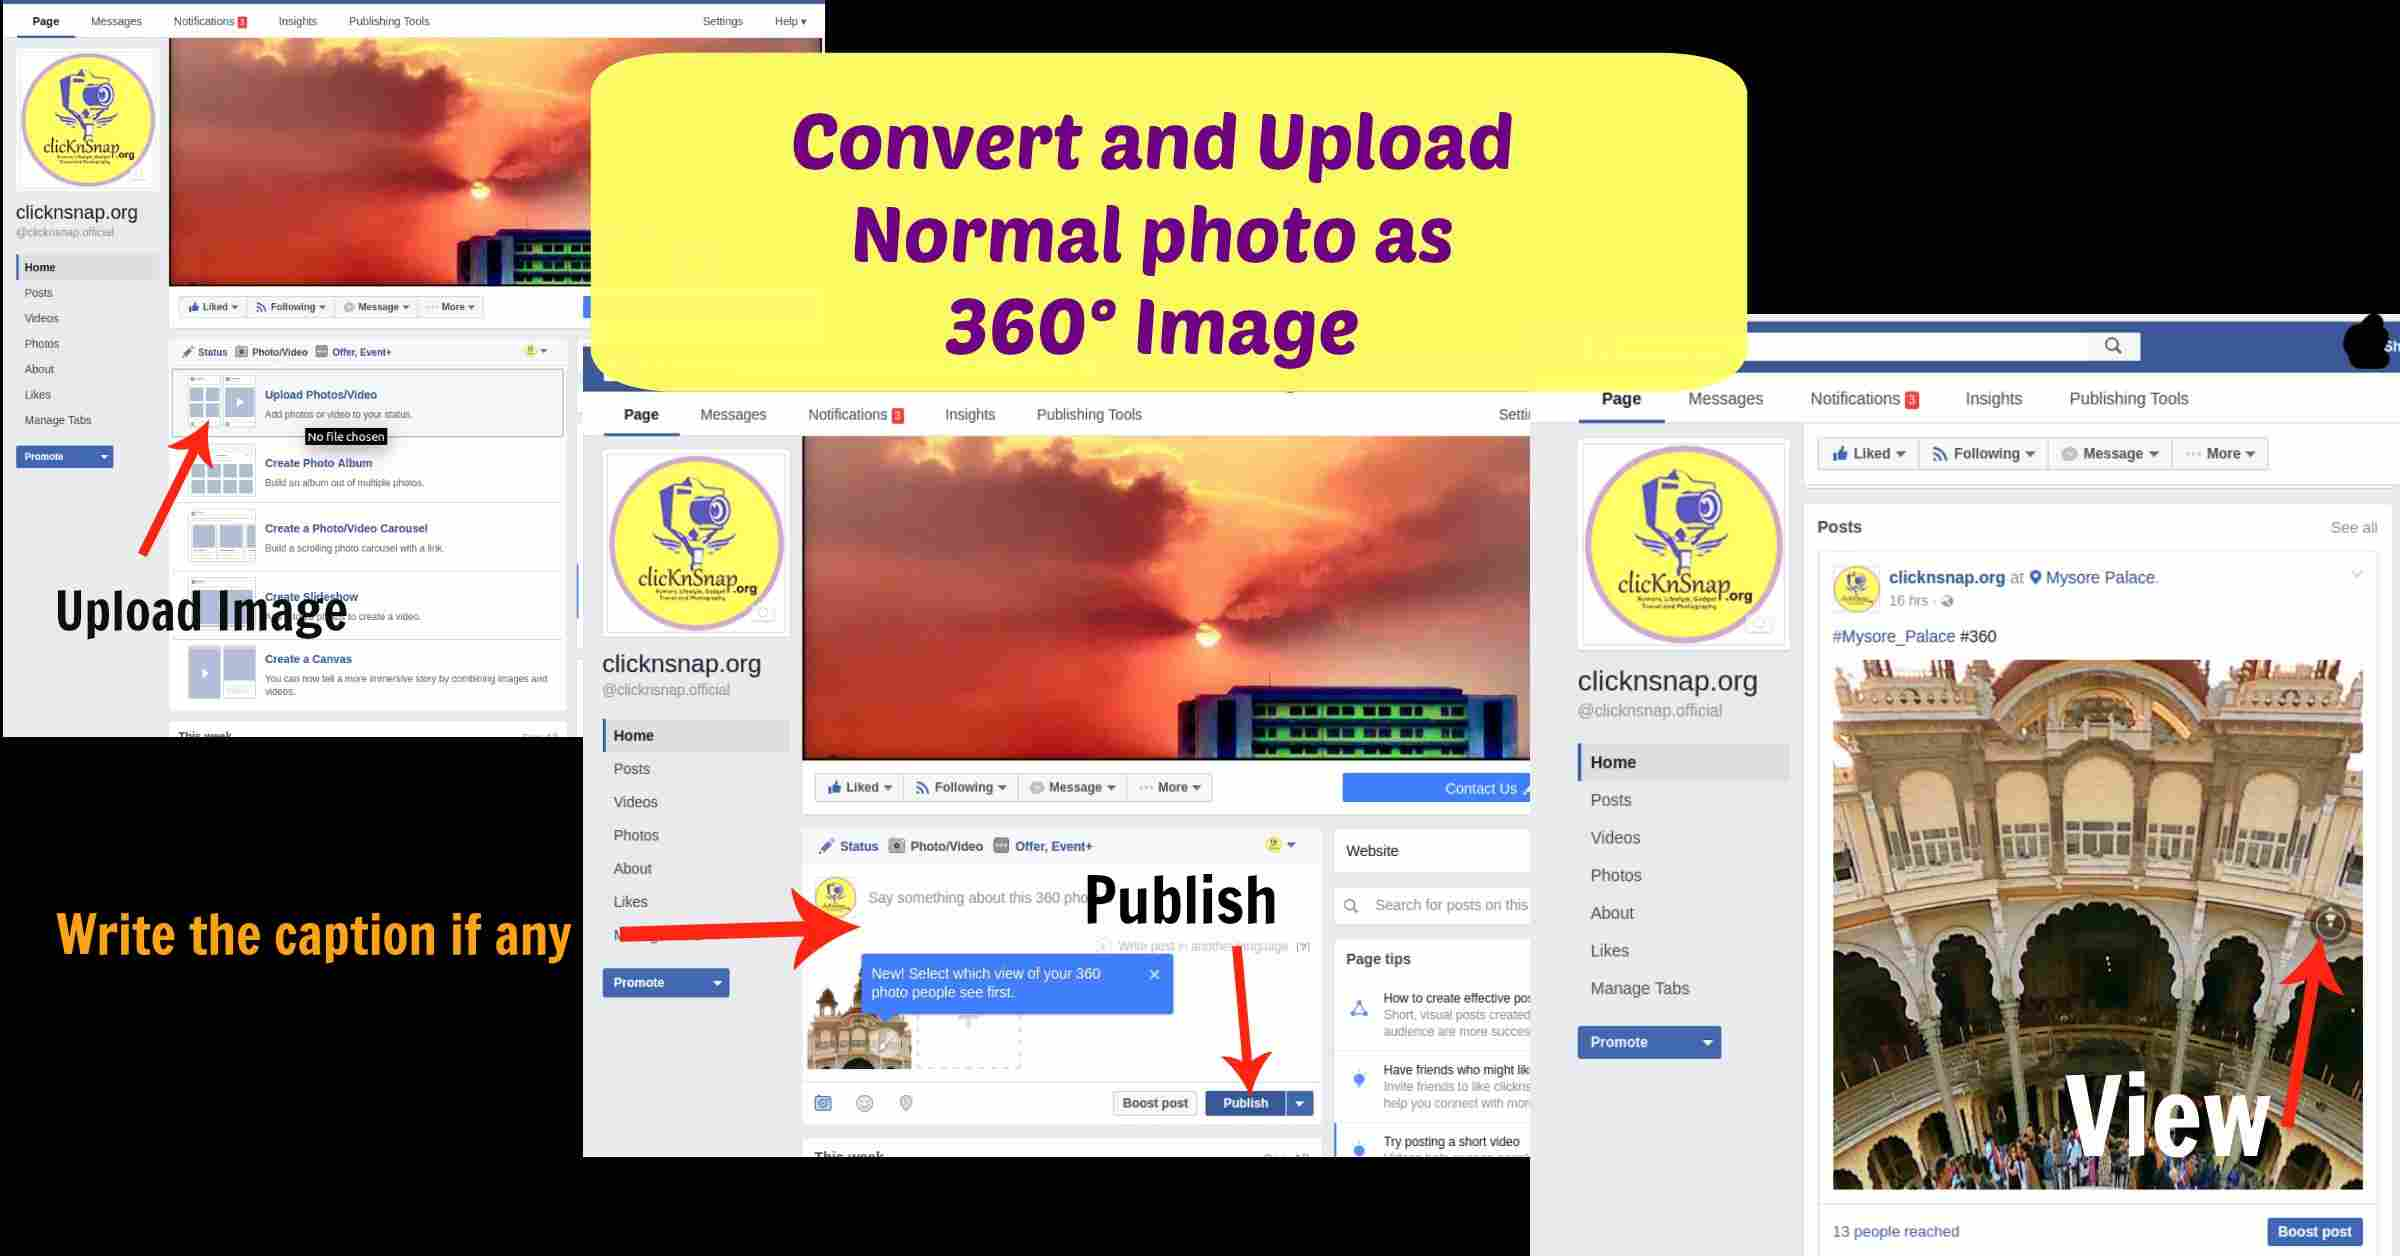 Facebook – How to Convert and Upload Normal photo as 360° Image